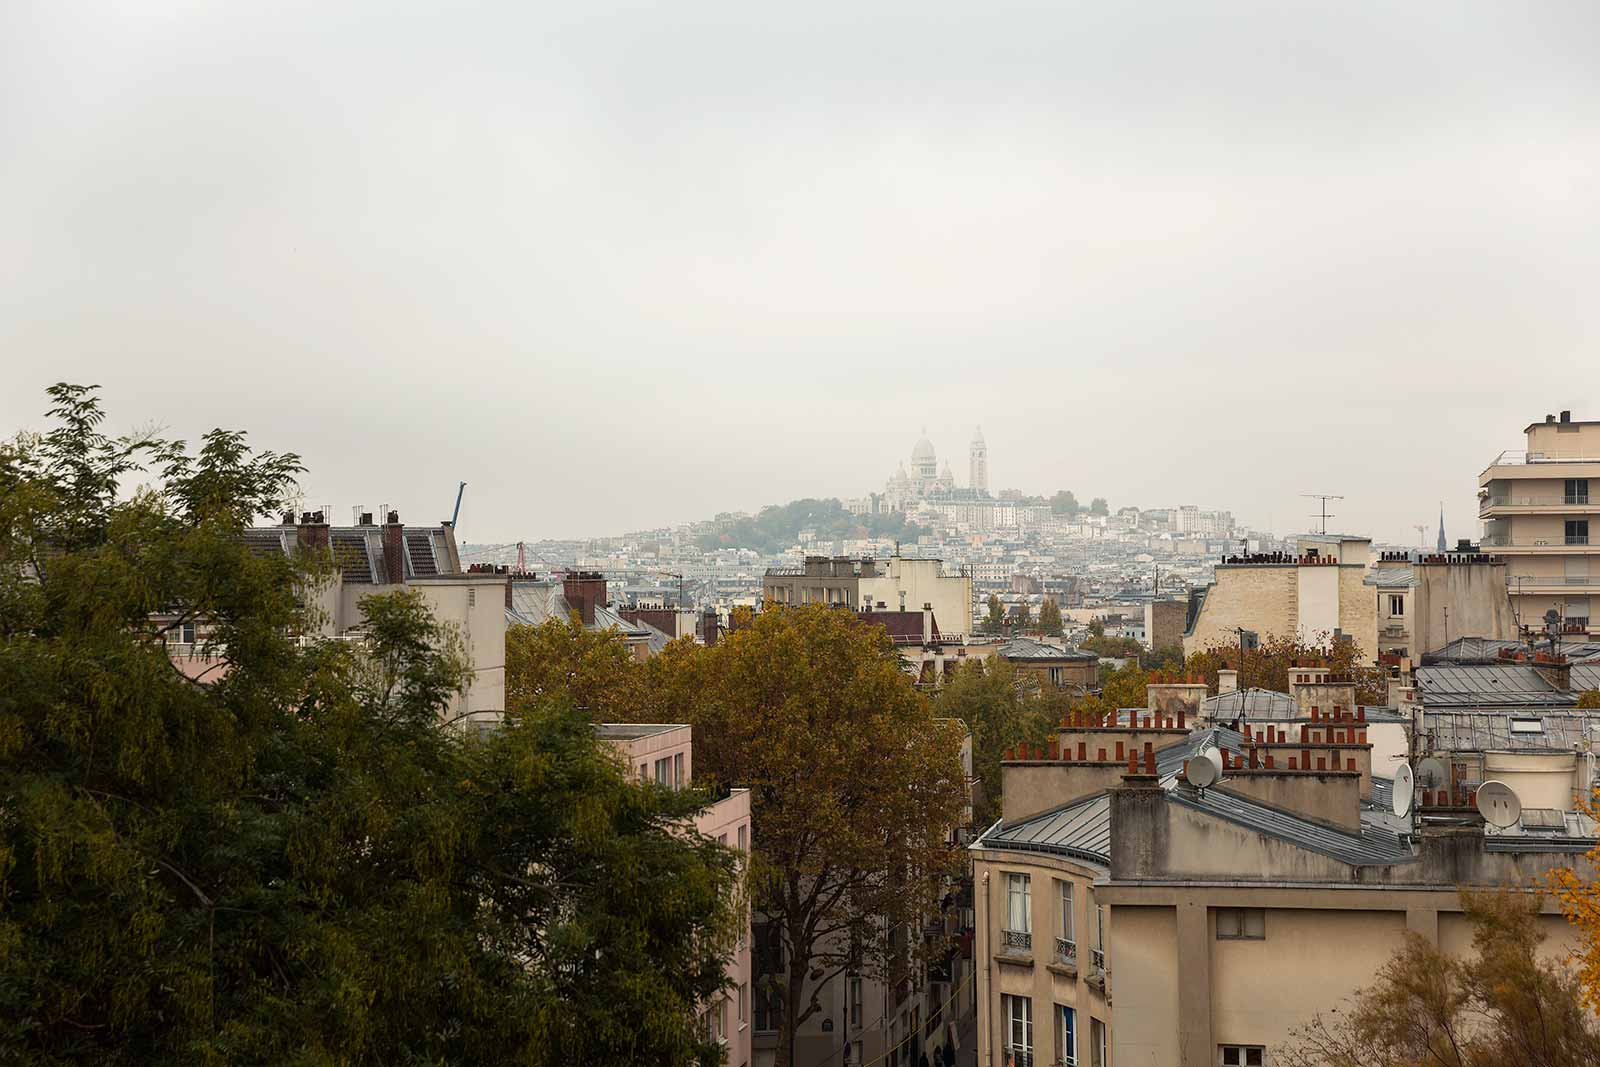 At the top of Butte Bergeyre you have a stunning view of Sacré Coeur.